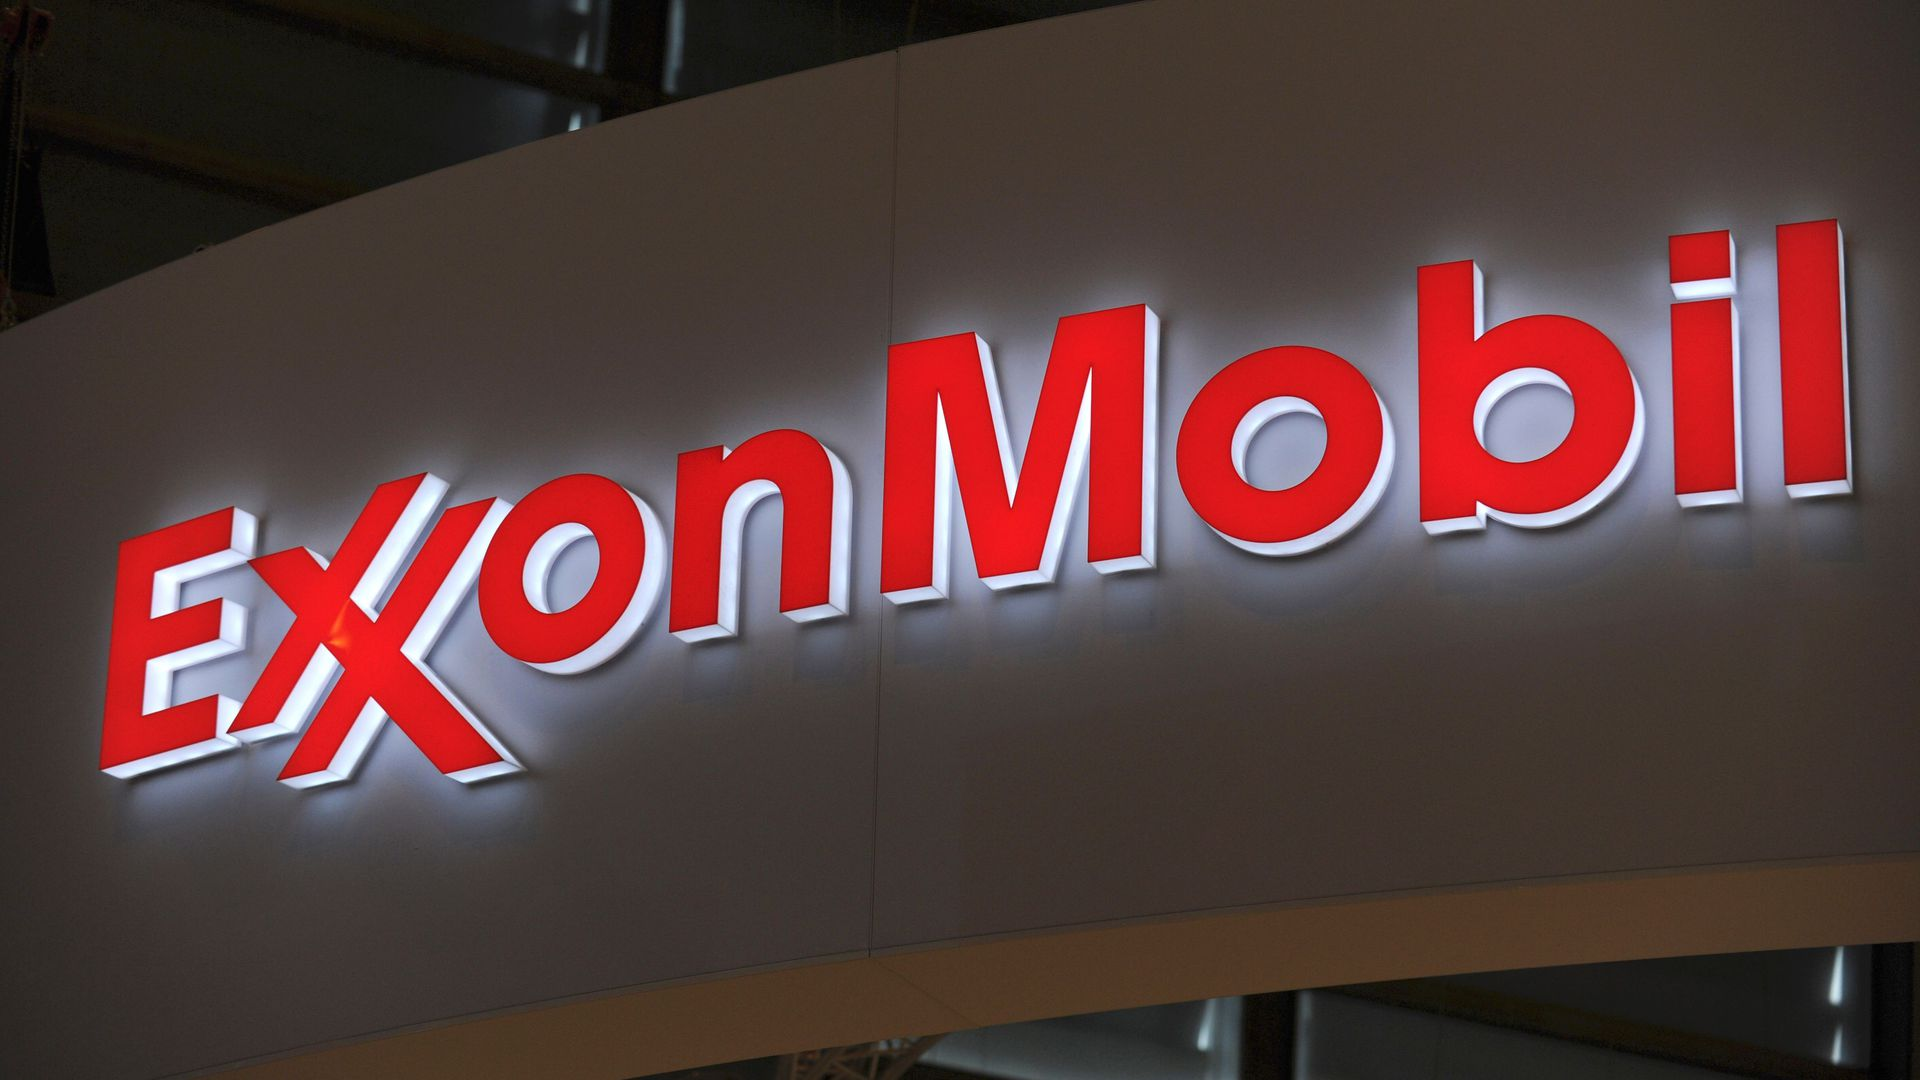 ExxonMobil sign lit up in the dark